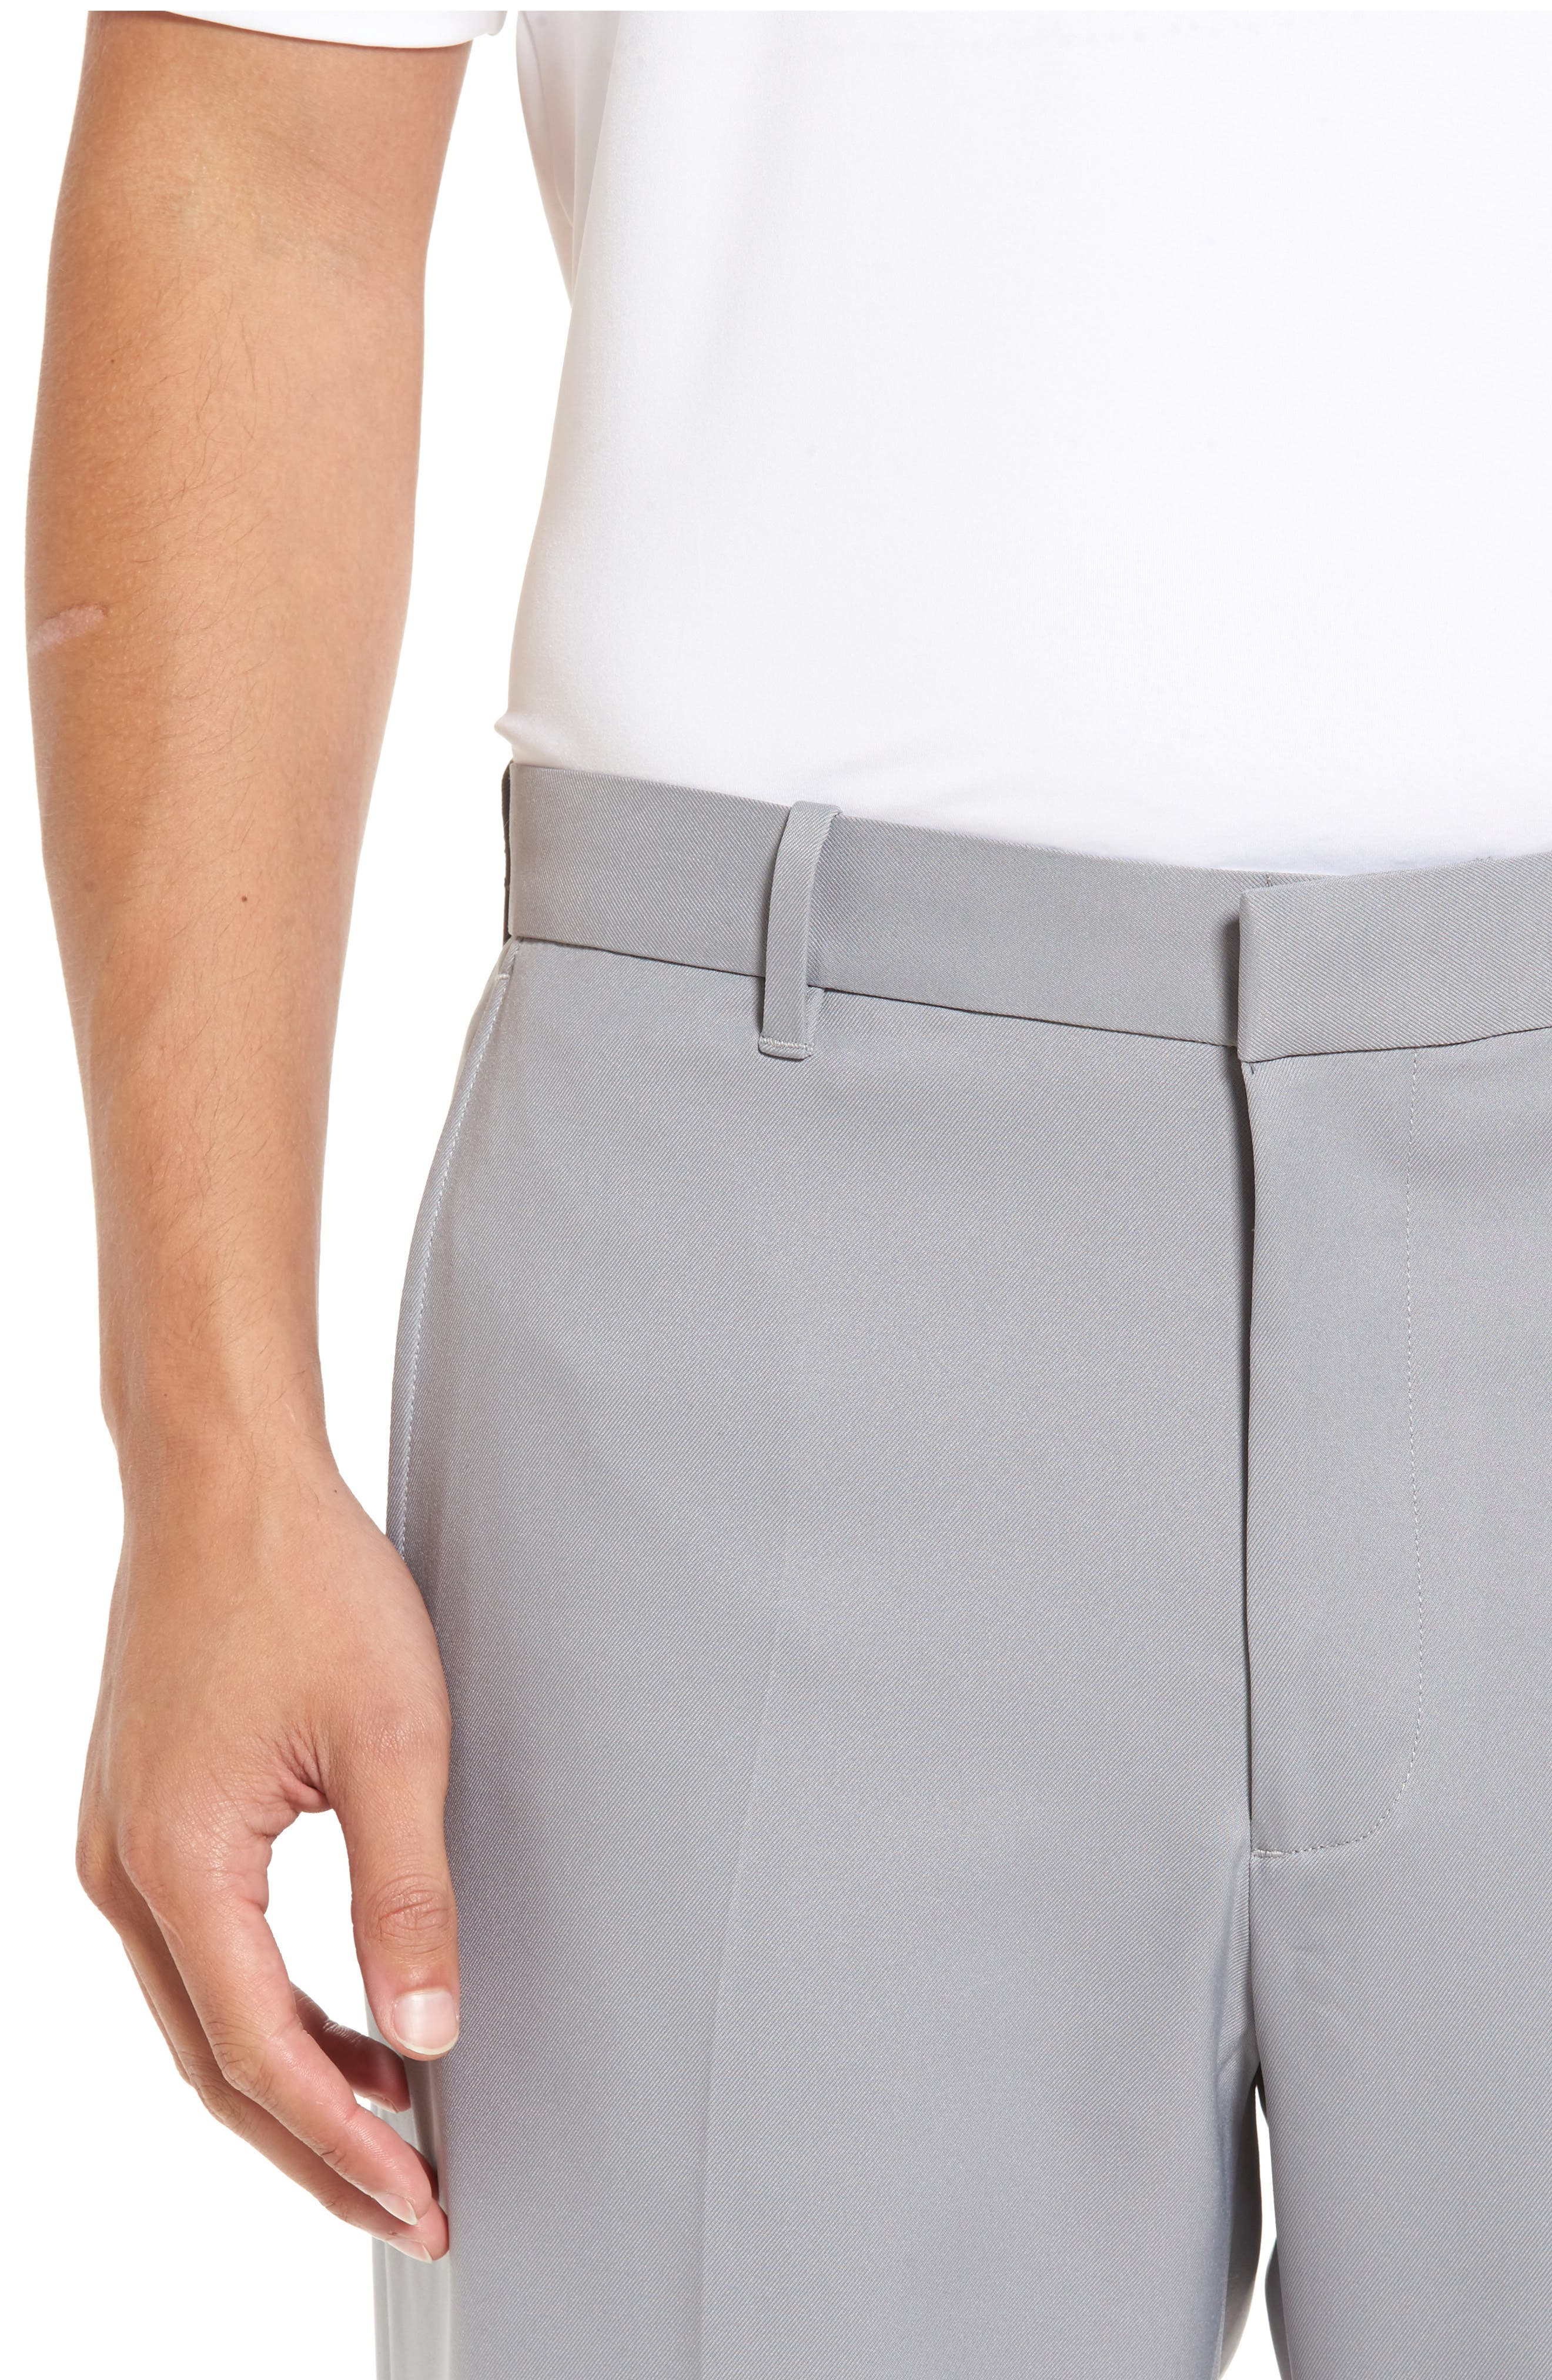 'Tech' Flat Front Wrinkle Free Golf Pants,                             Alternate thumbnail 4, color,                             052